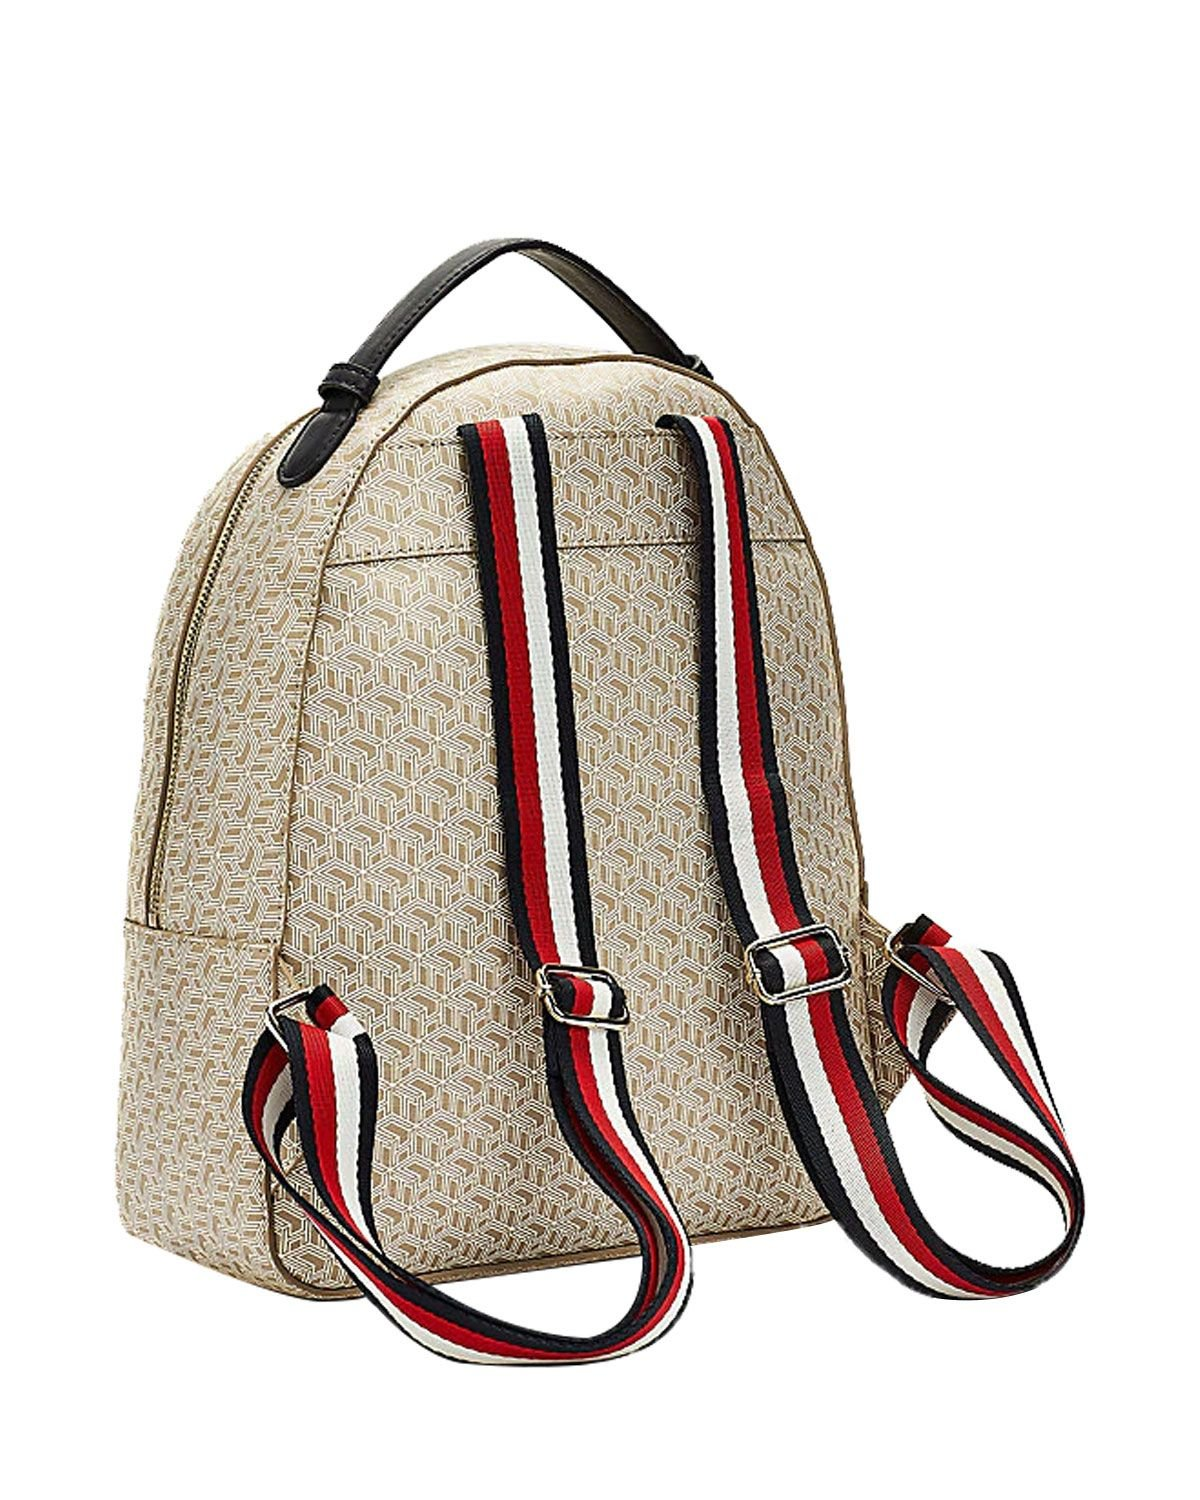 Tommy Hilfiger Iconic Tommy Backpack Monogram Kadın Sırt Çantası AW0AW07926 Neutral